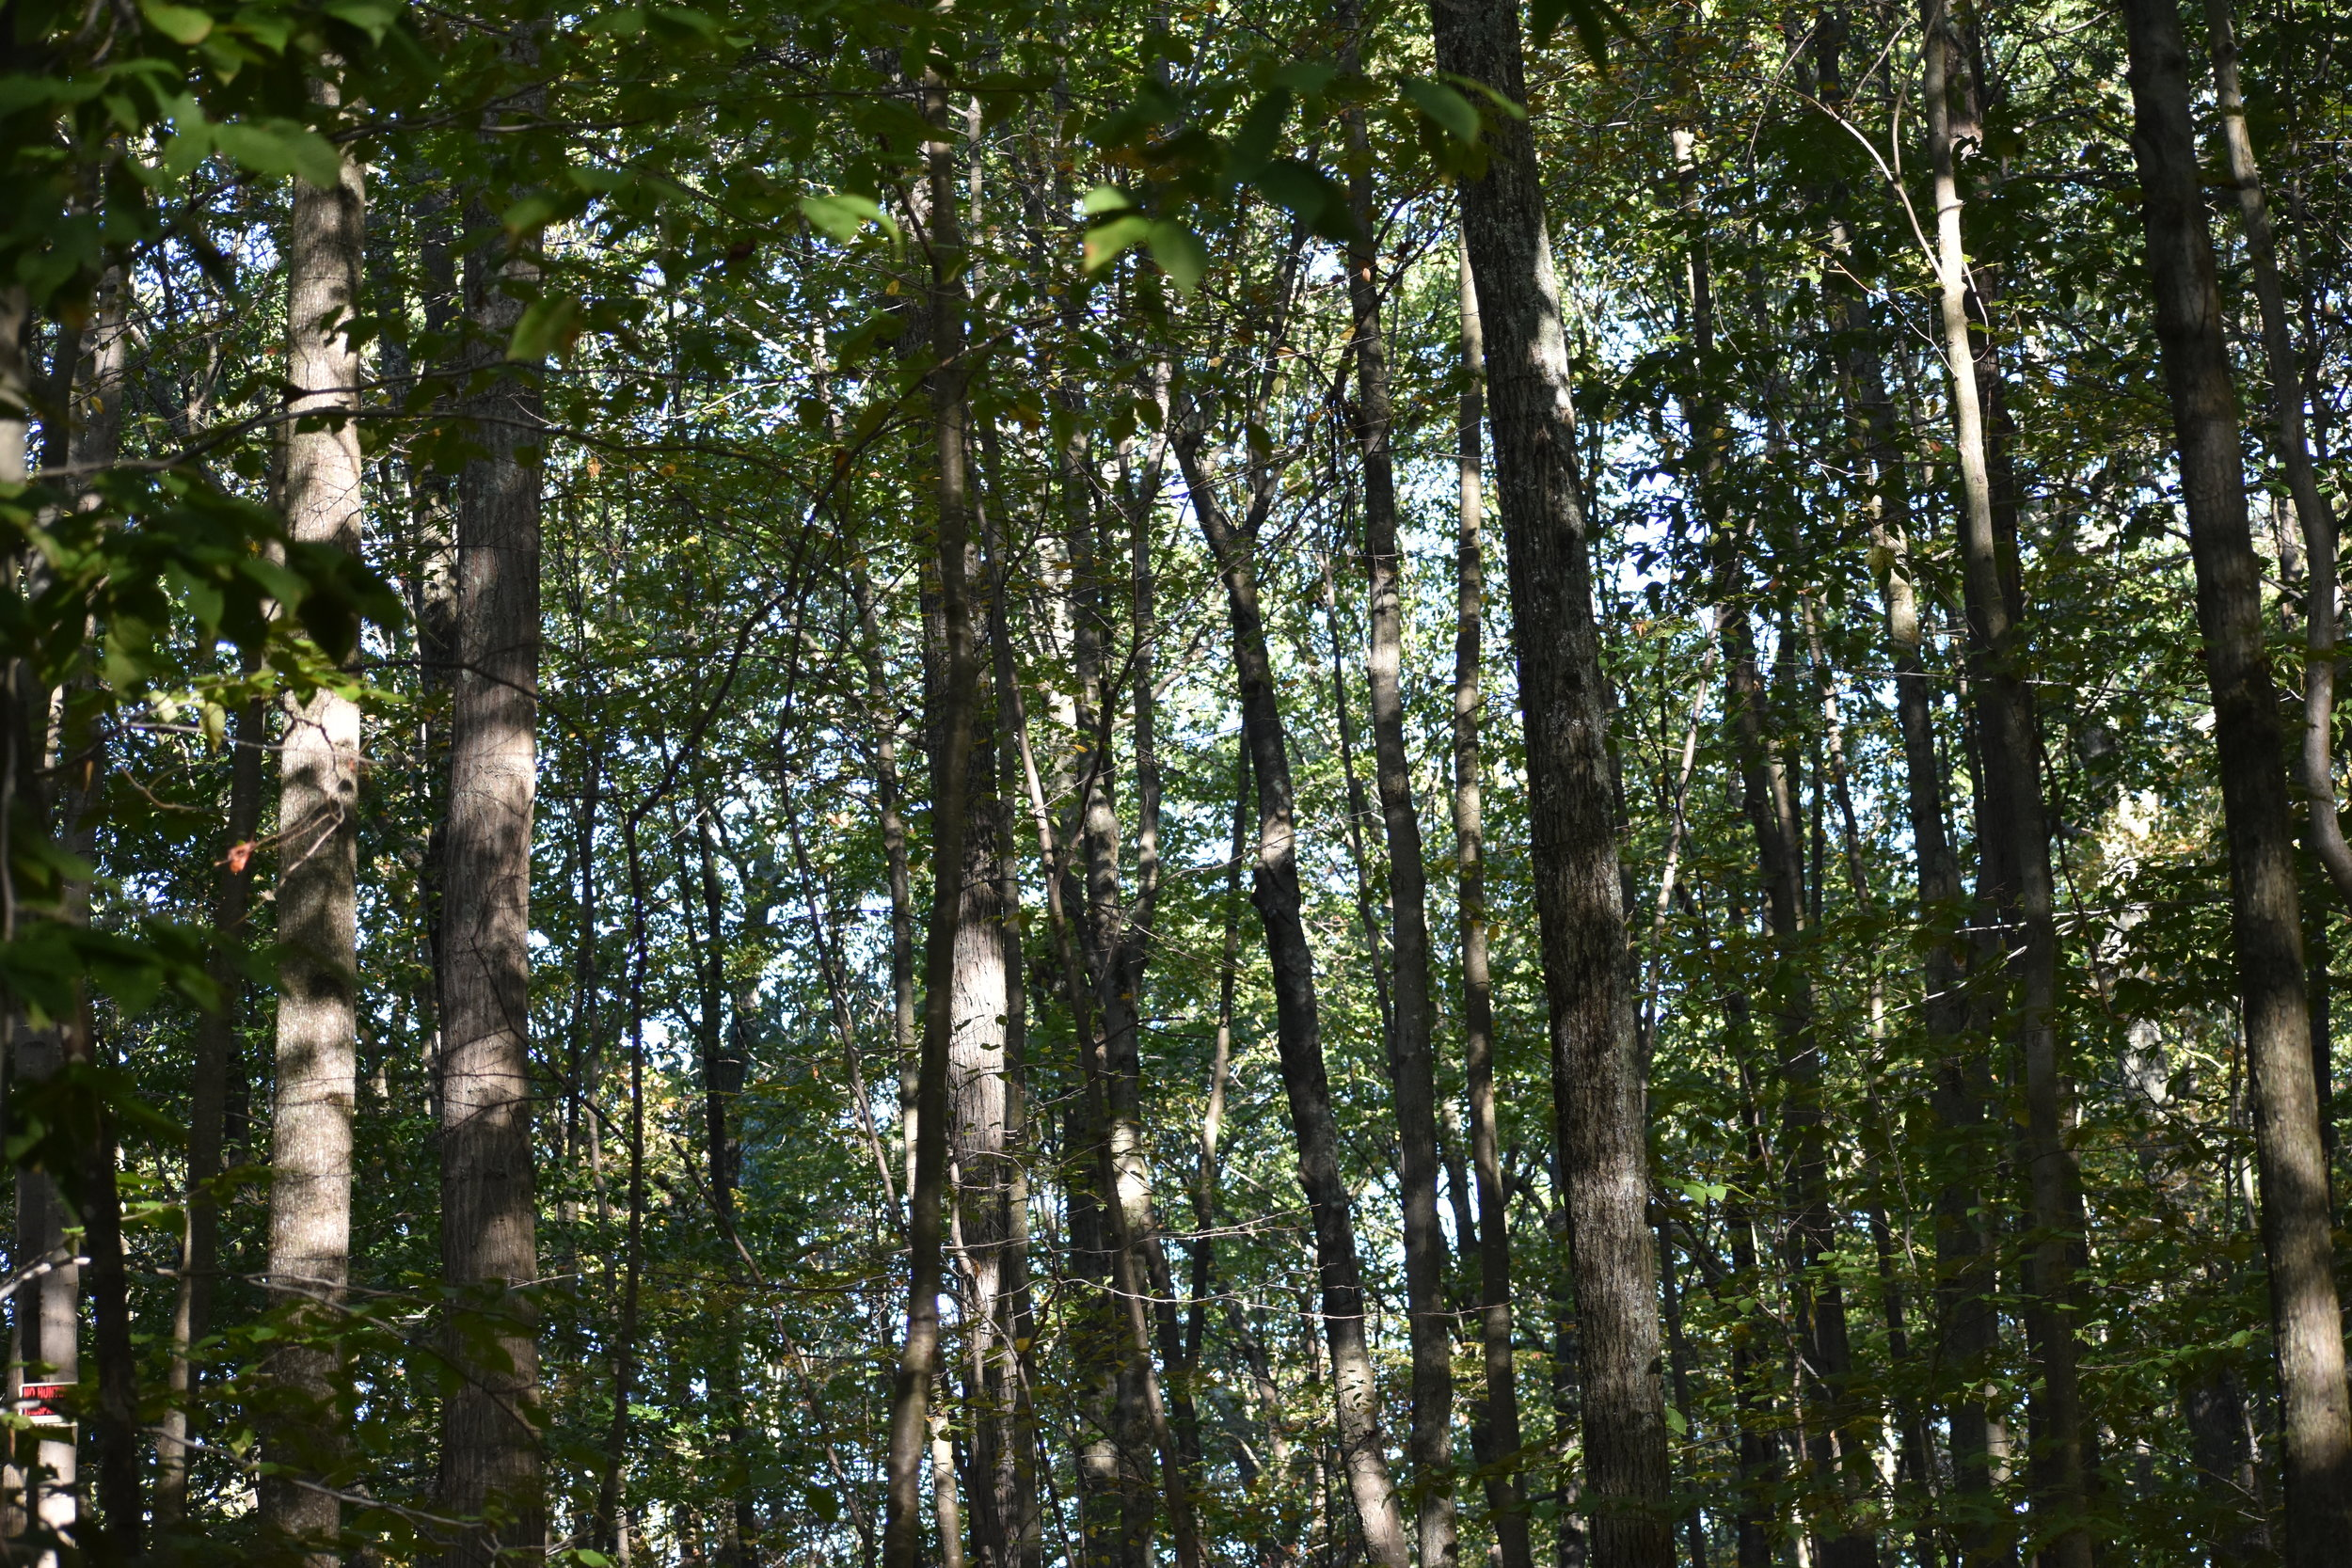 Canopy of Mature Deciduous Forest